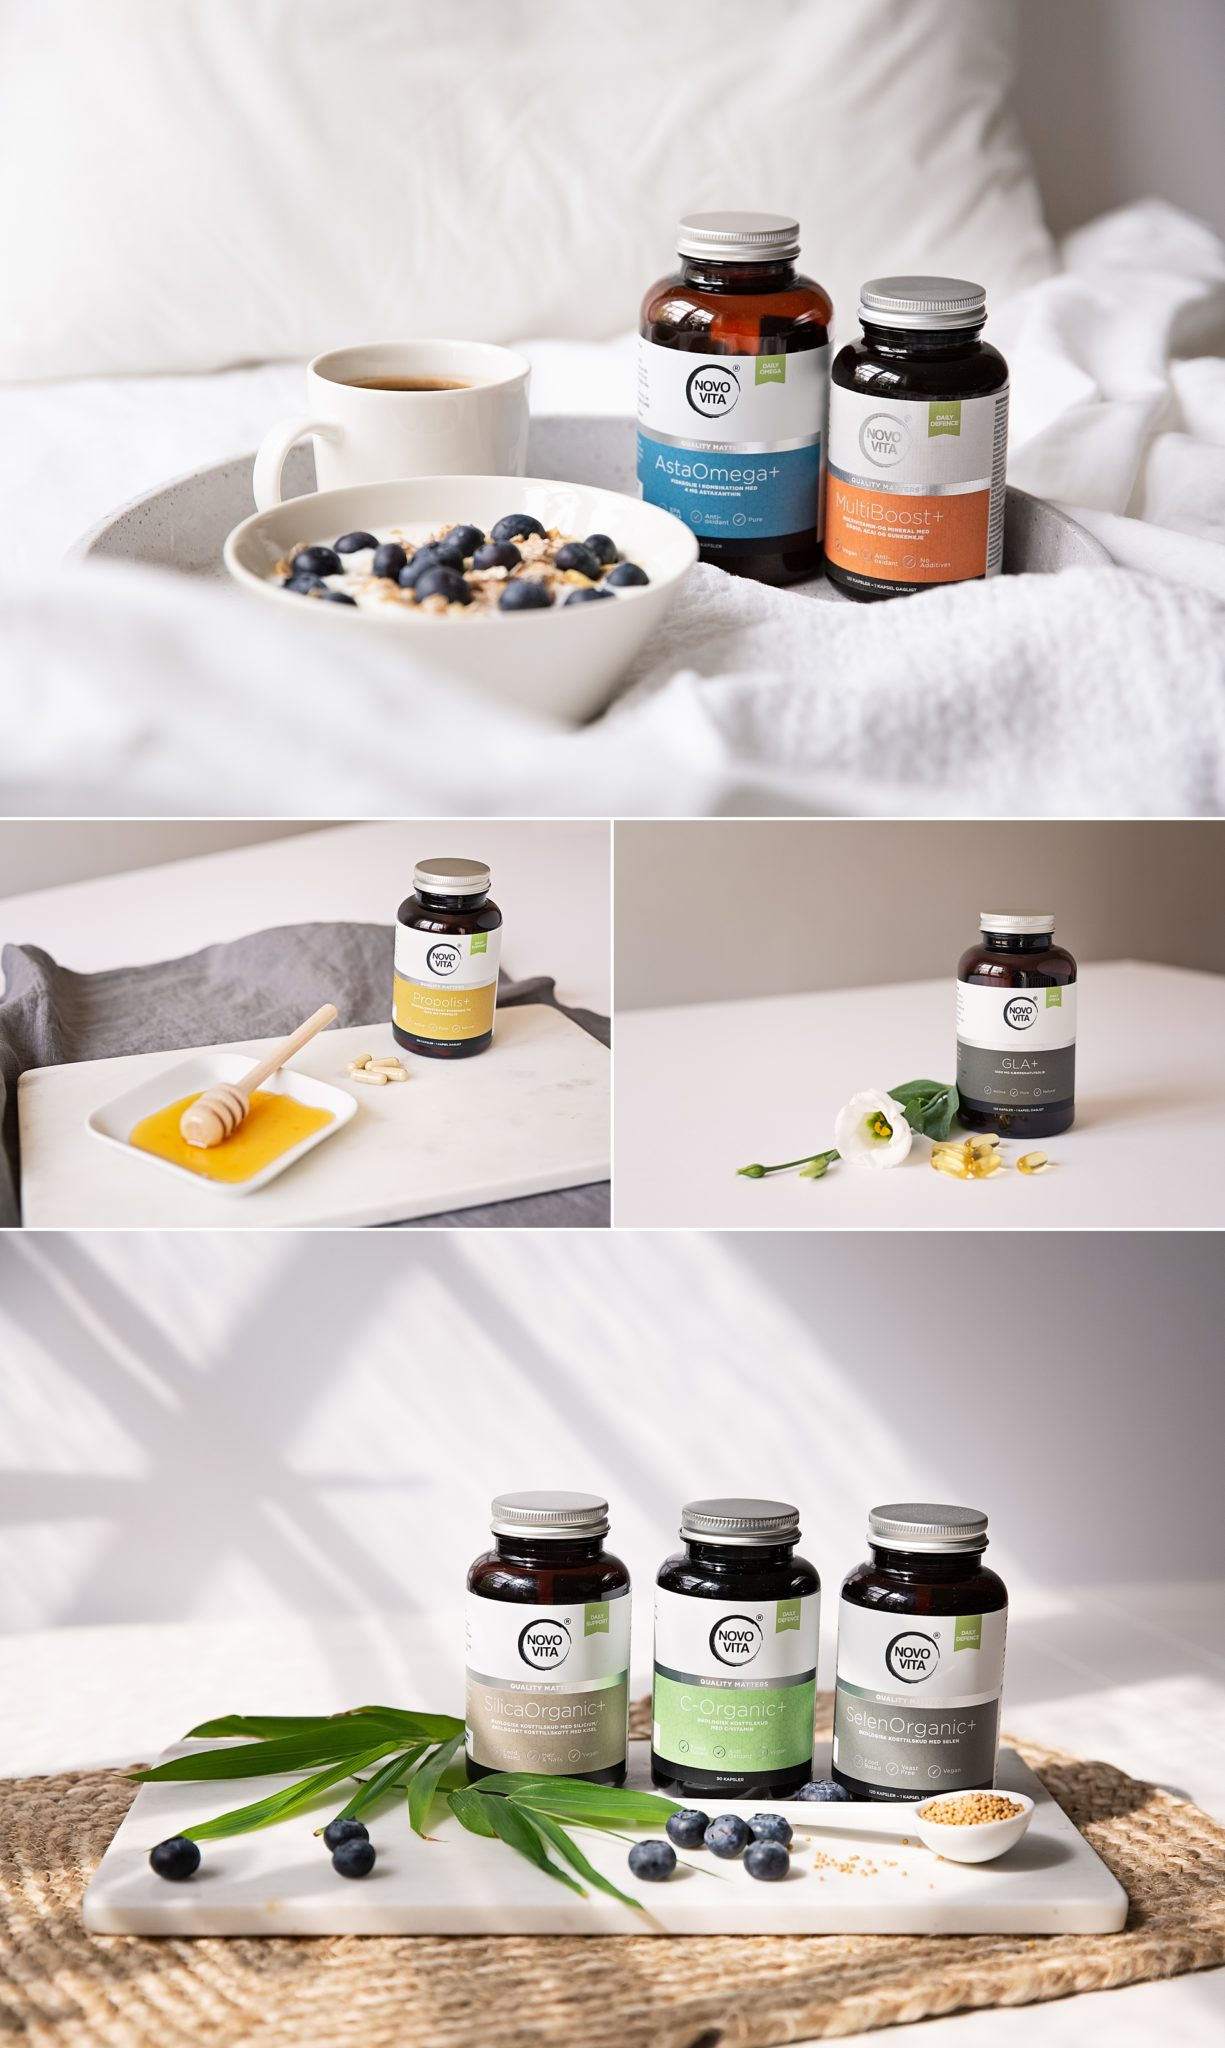 Light photos of healthcare products and food